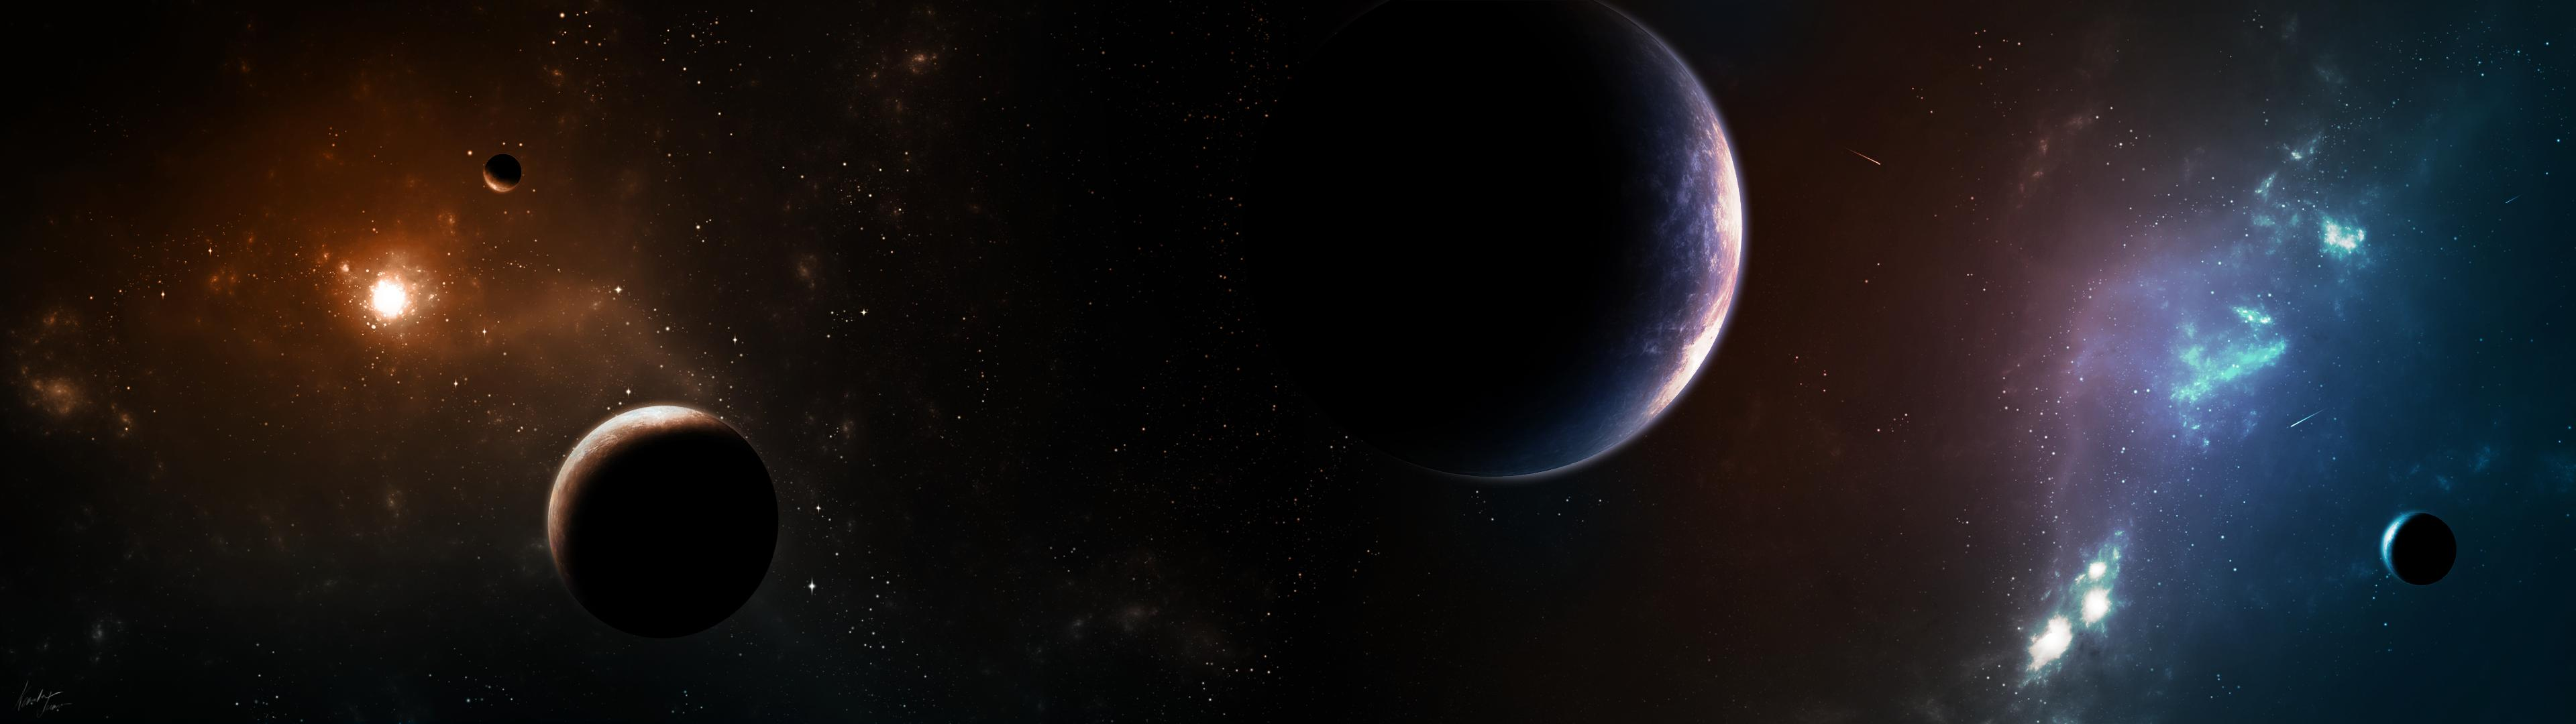 My dual screen space wallpaper [3840x1080]   RedditLurker All Reddit 3840x1080